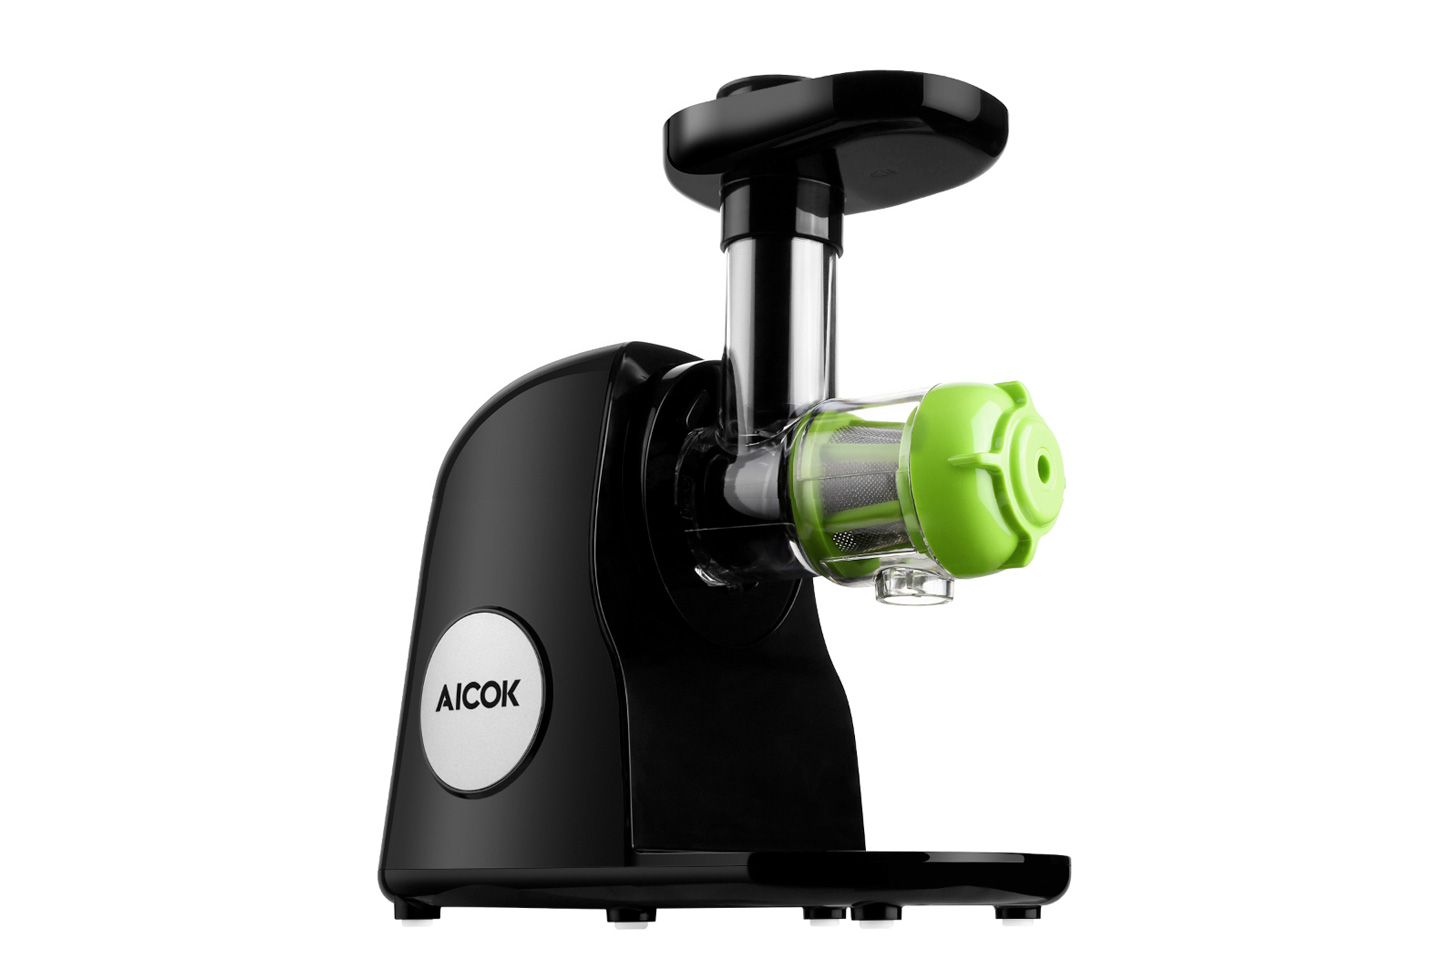 AICOK AMR-521 Slow Juicer, Black